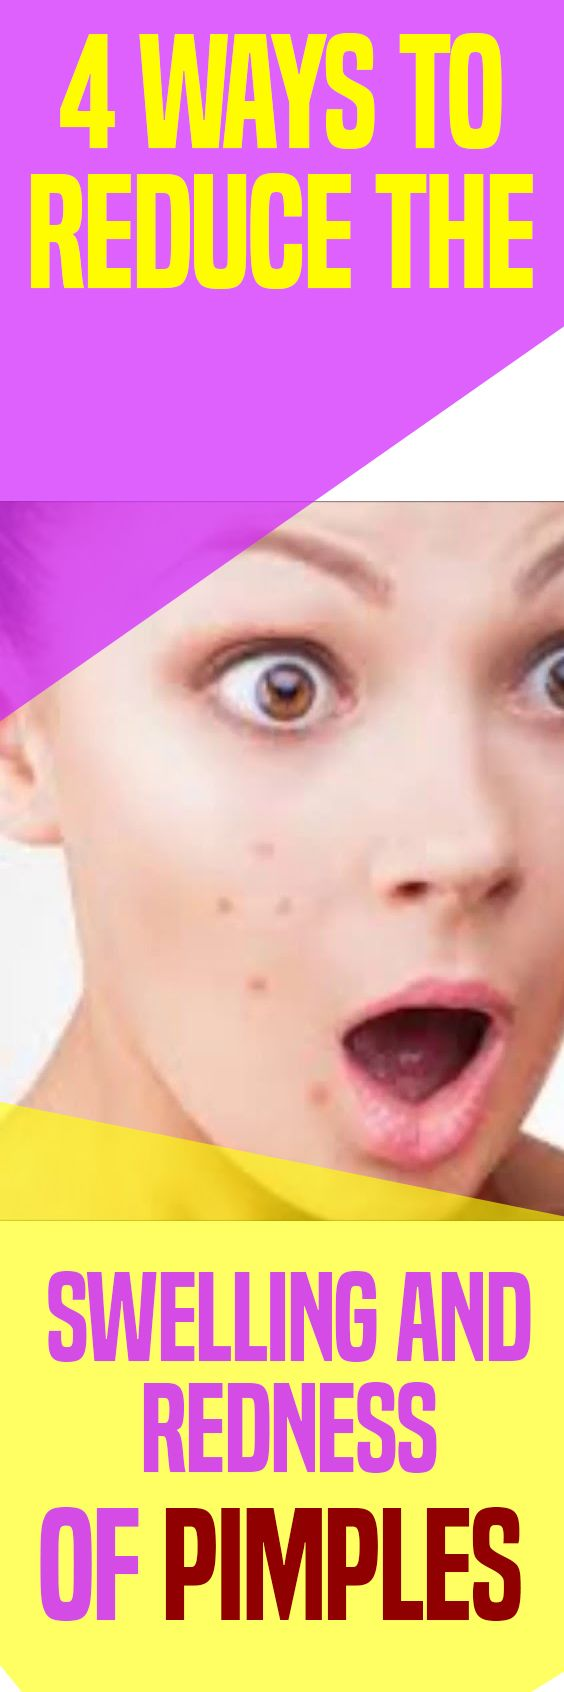 4 Ways to Reduce the Swelling and Redness of Pimples